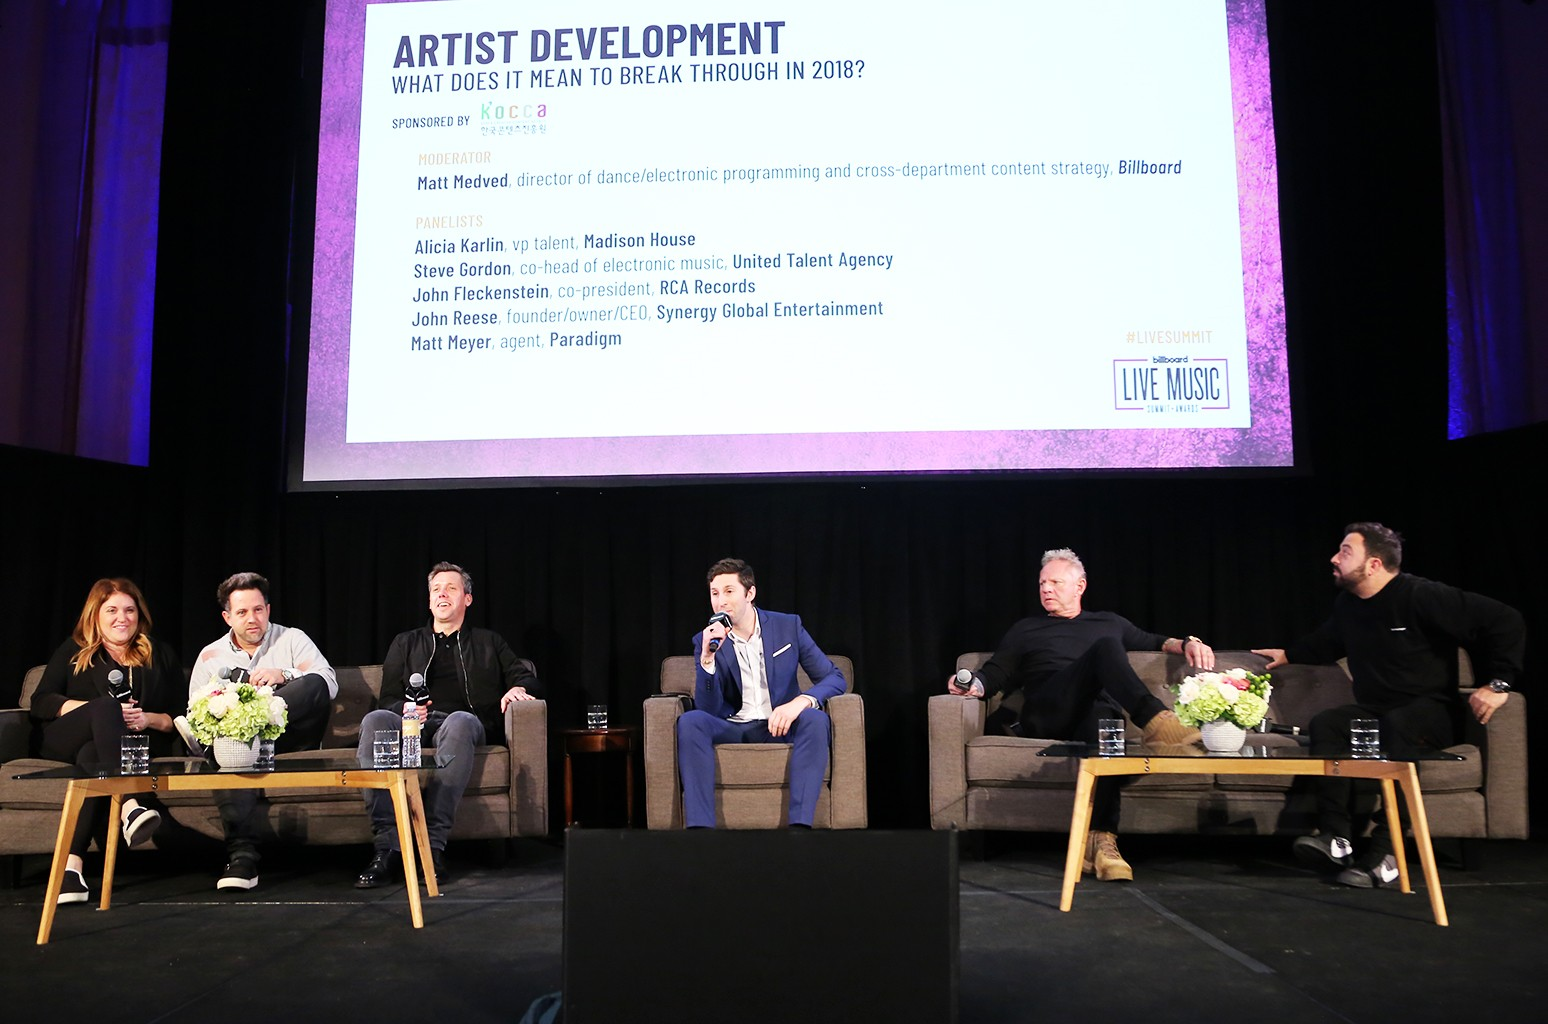 'Artist Devlopment: What Does it Mean to Break Through in 2018?' panel during the 2018 Billboard Live Music Summit + Awards at the Montage Beverly Hills on Nov. 14, 2018 in Beverly Hills, Calif.